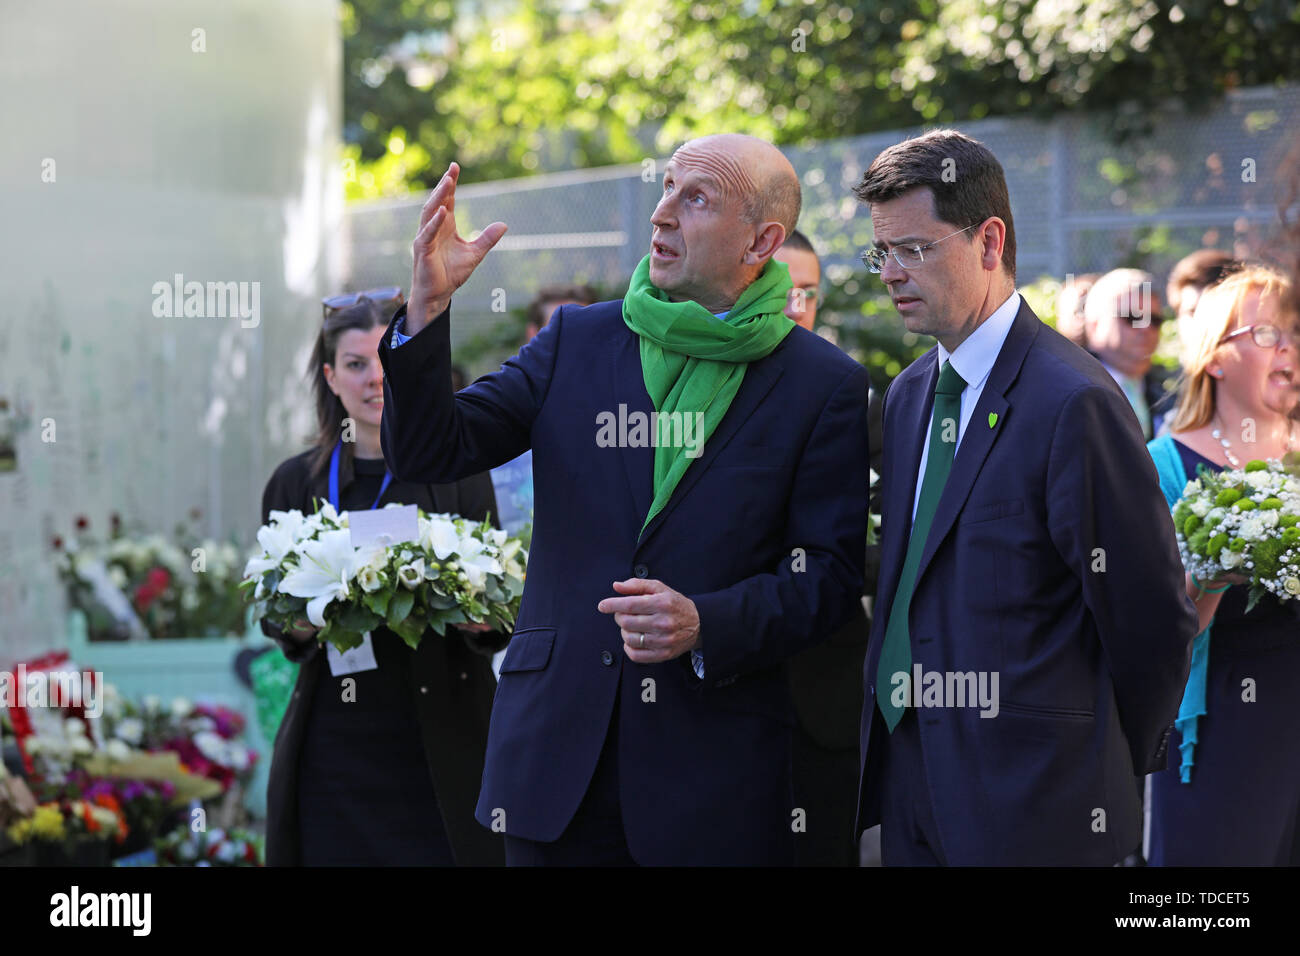 Shadow housing secretary John Healey (left) outside Grenfell Tower, London, ahead of the wreath laying ceremony, to mark the two-year anniversary of the tower block fire in memory of the 72 people who lost their lives. - Stock Image